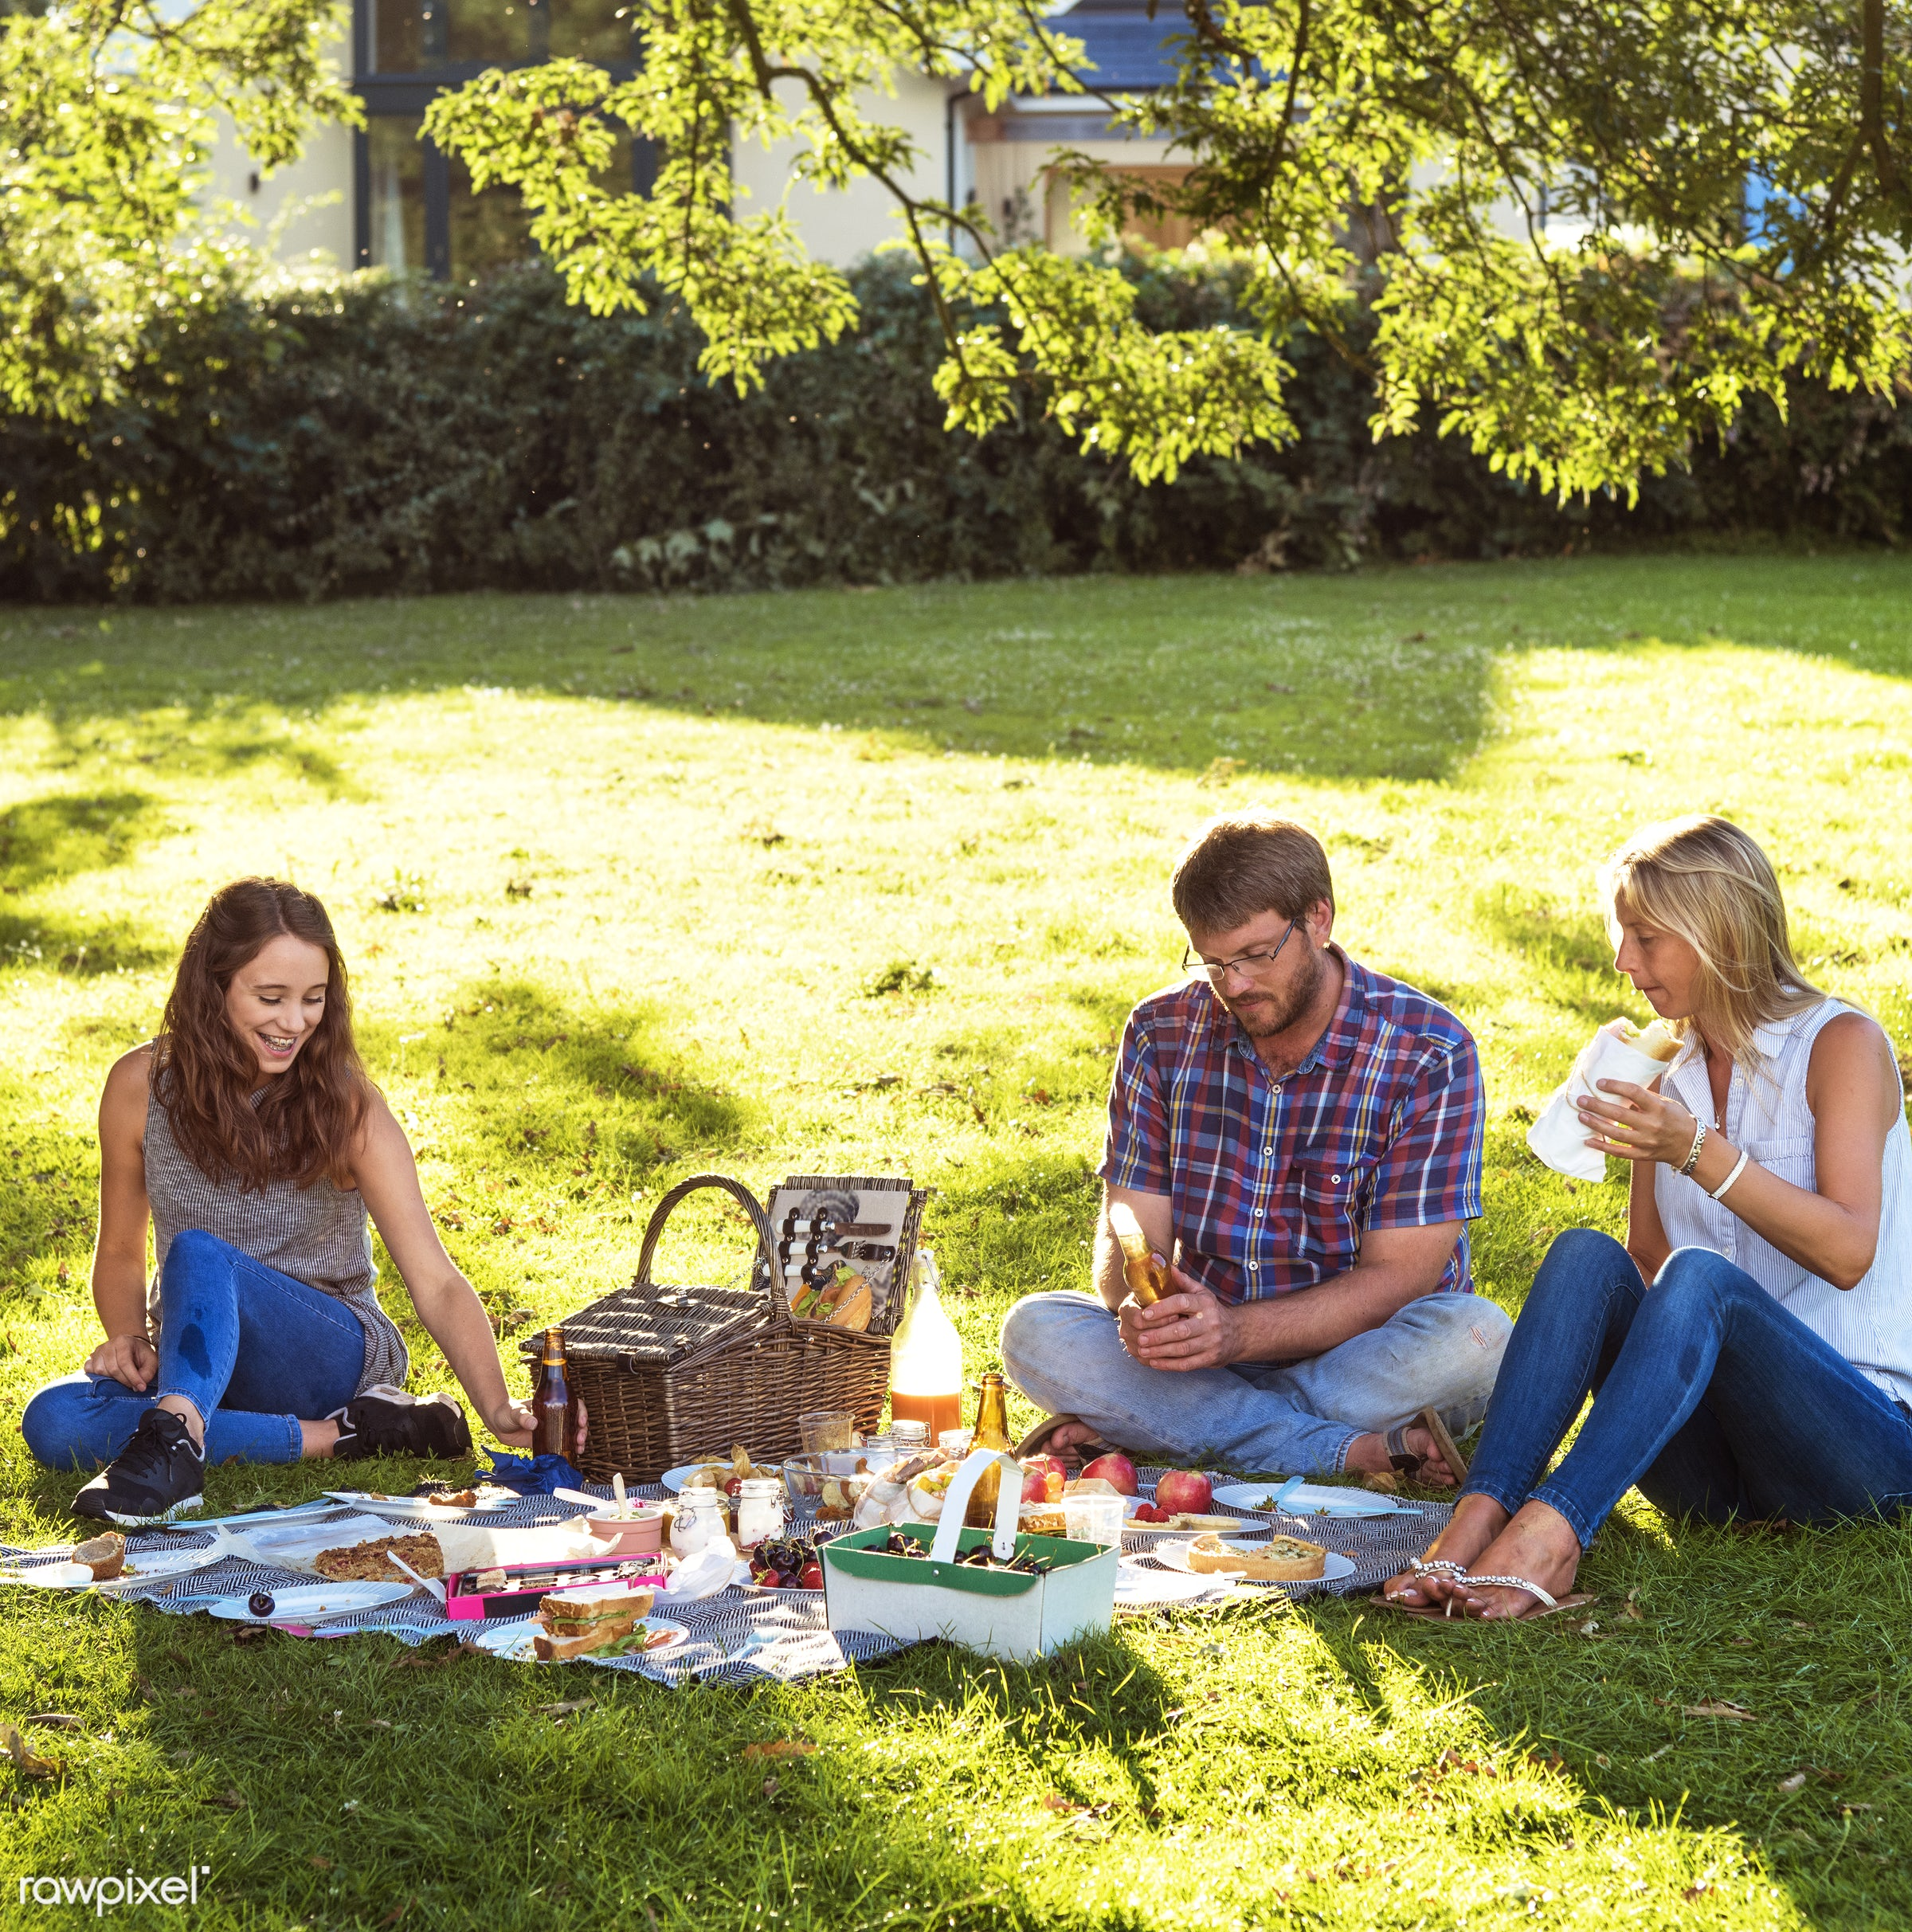 Happy family picnic in the park - bonding, cheerful, children, daughter, enjoyment, family, father, field, fun, garden,...